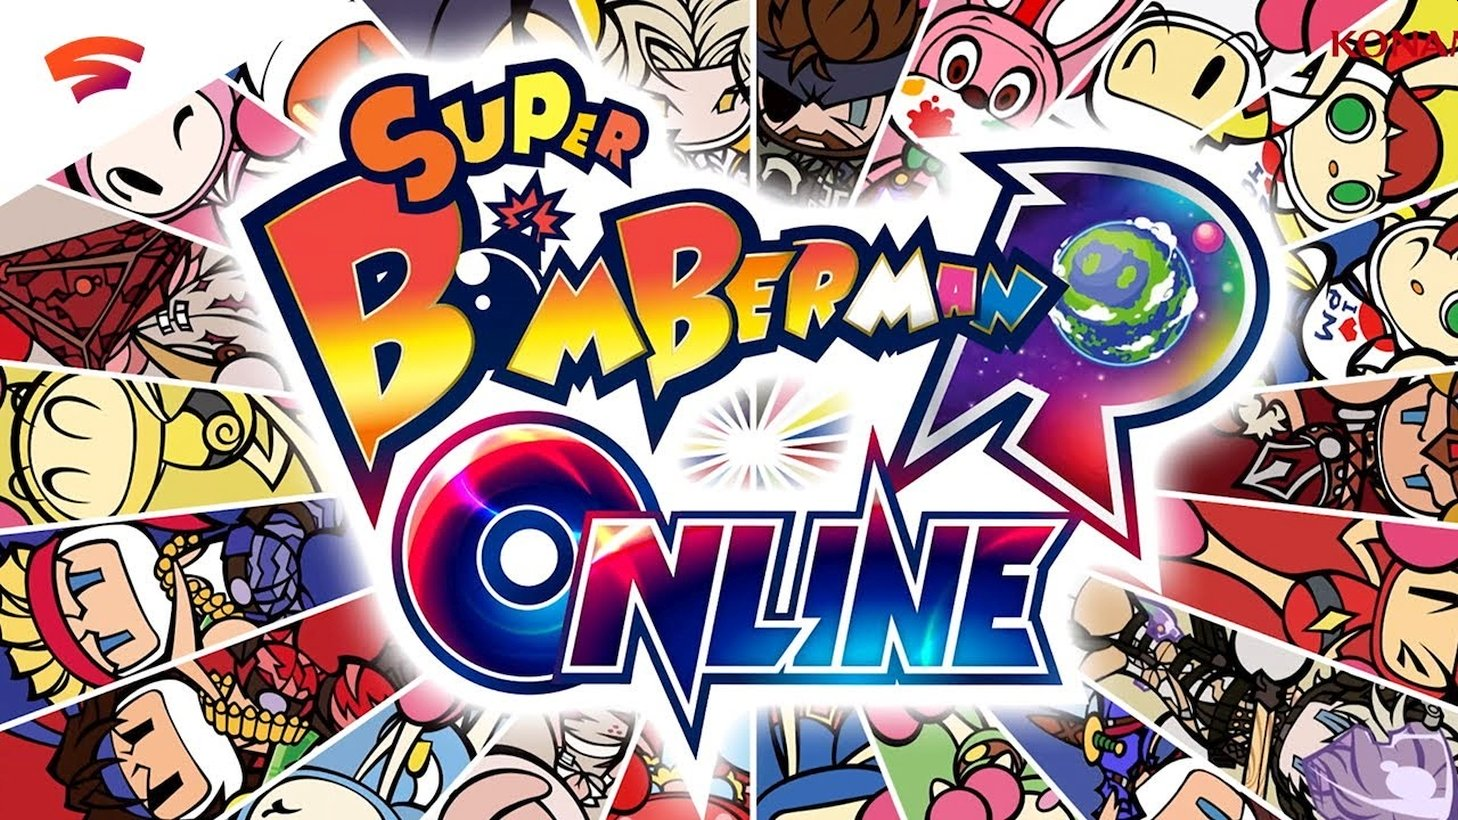 Super Bomberman R Online Launches With New Battle 64 Mode On Google Stadia This Fall